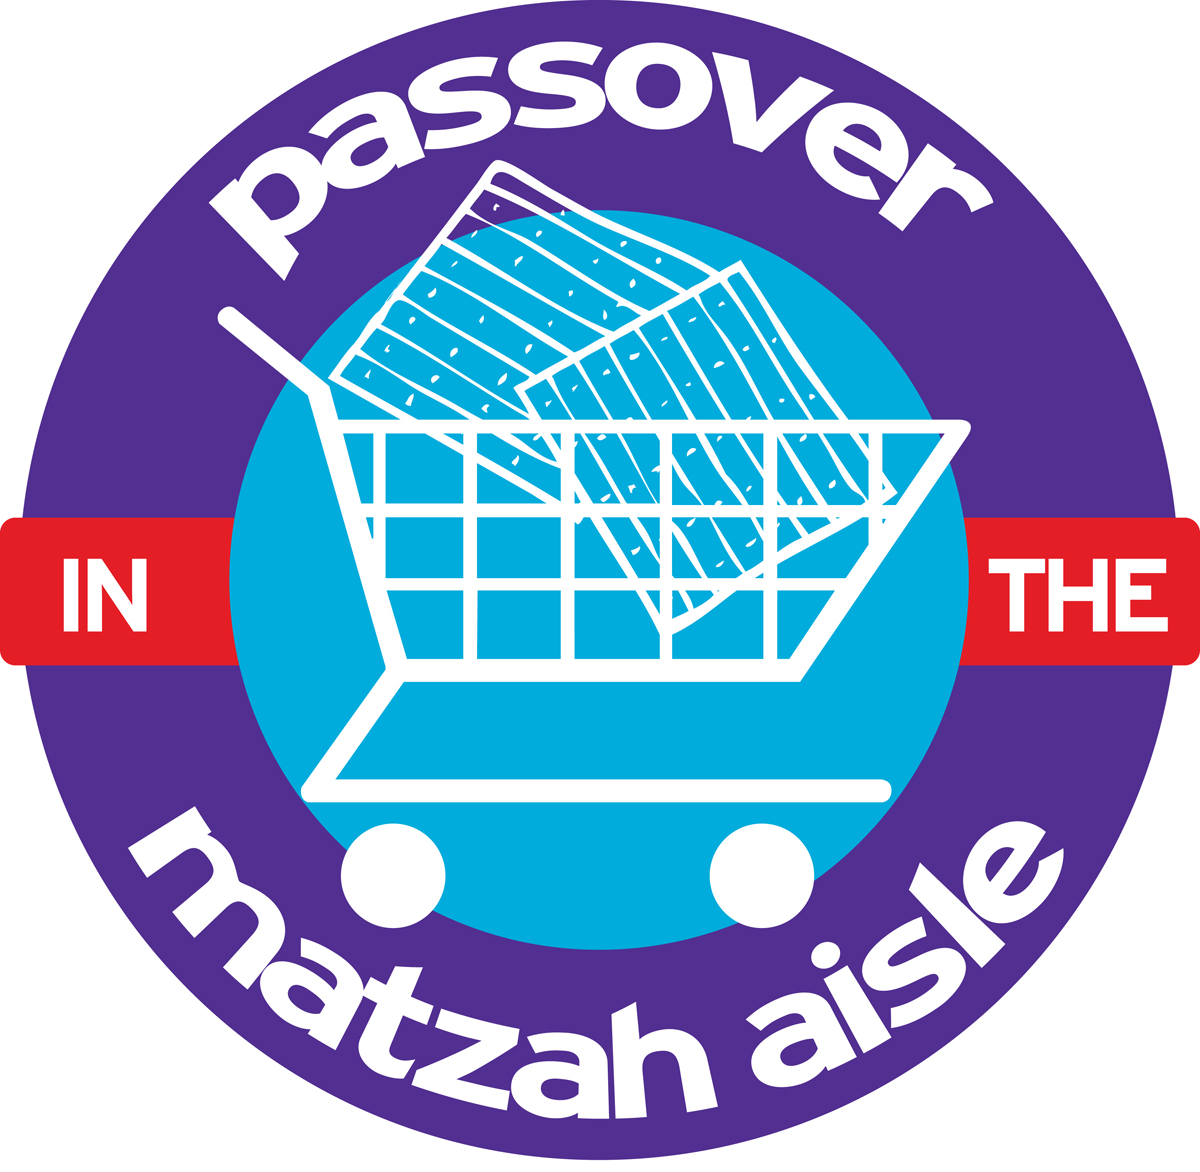 """Passover in the Matzah Aisle is one of Big Tent Judaism's most prominent """"Public Space Judaism"""" initiatives. Image Credit: Boulder Jewish News"""